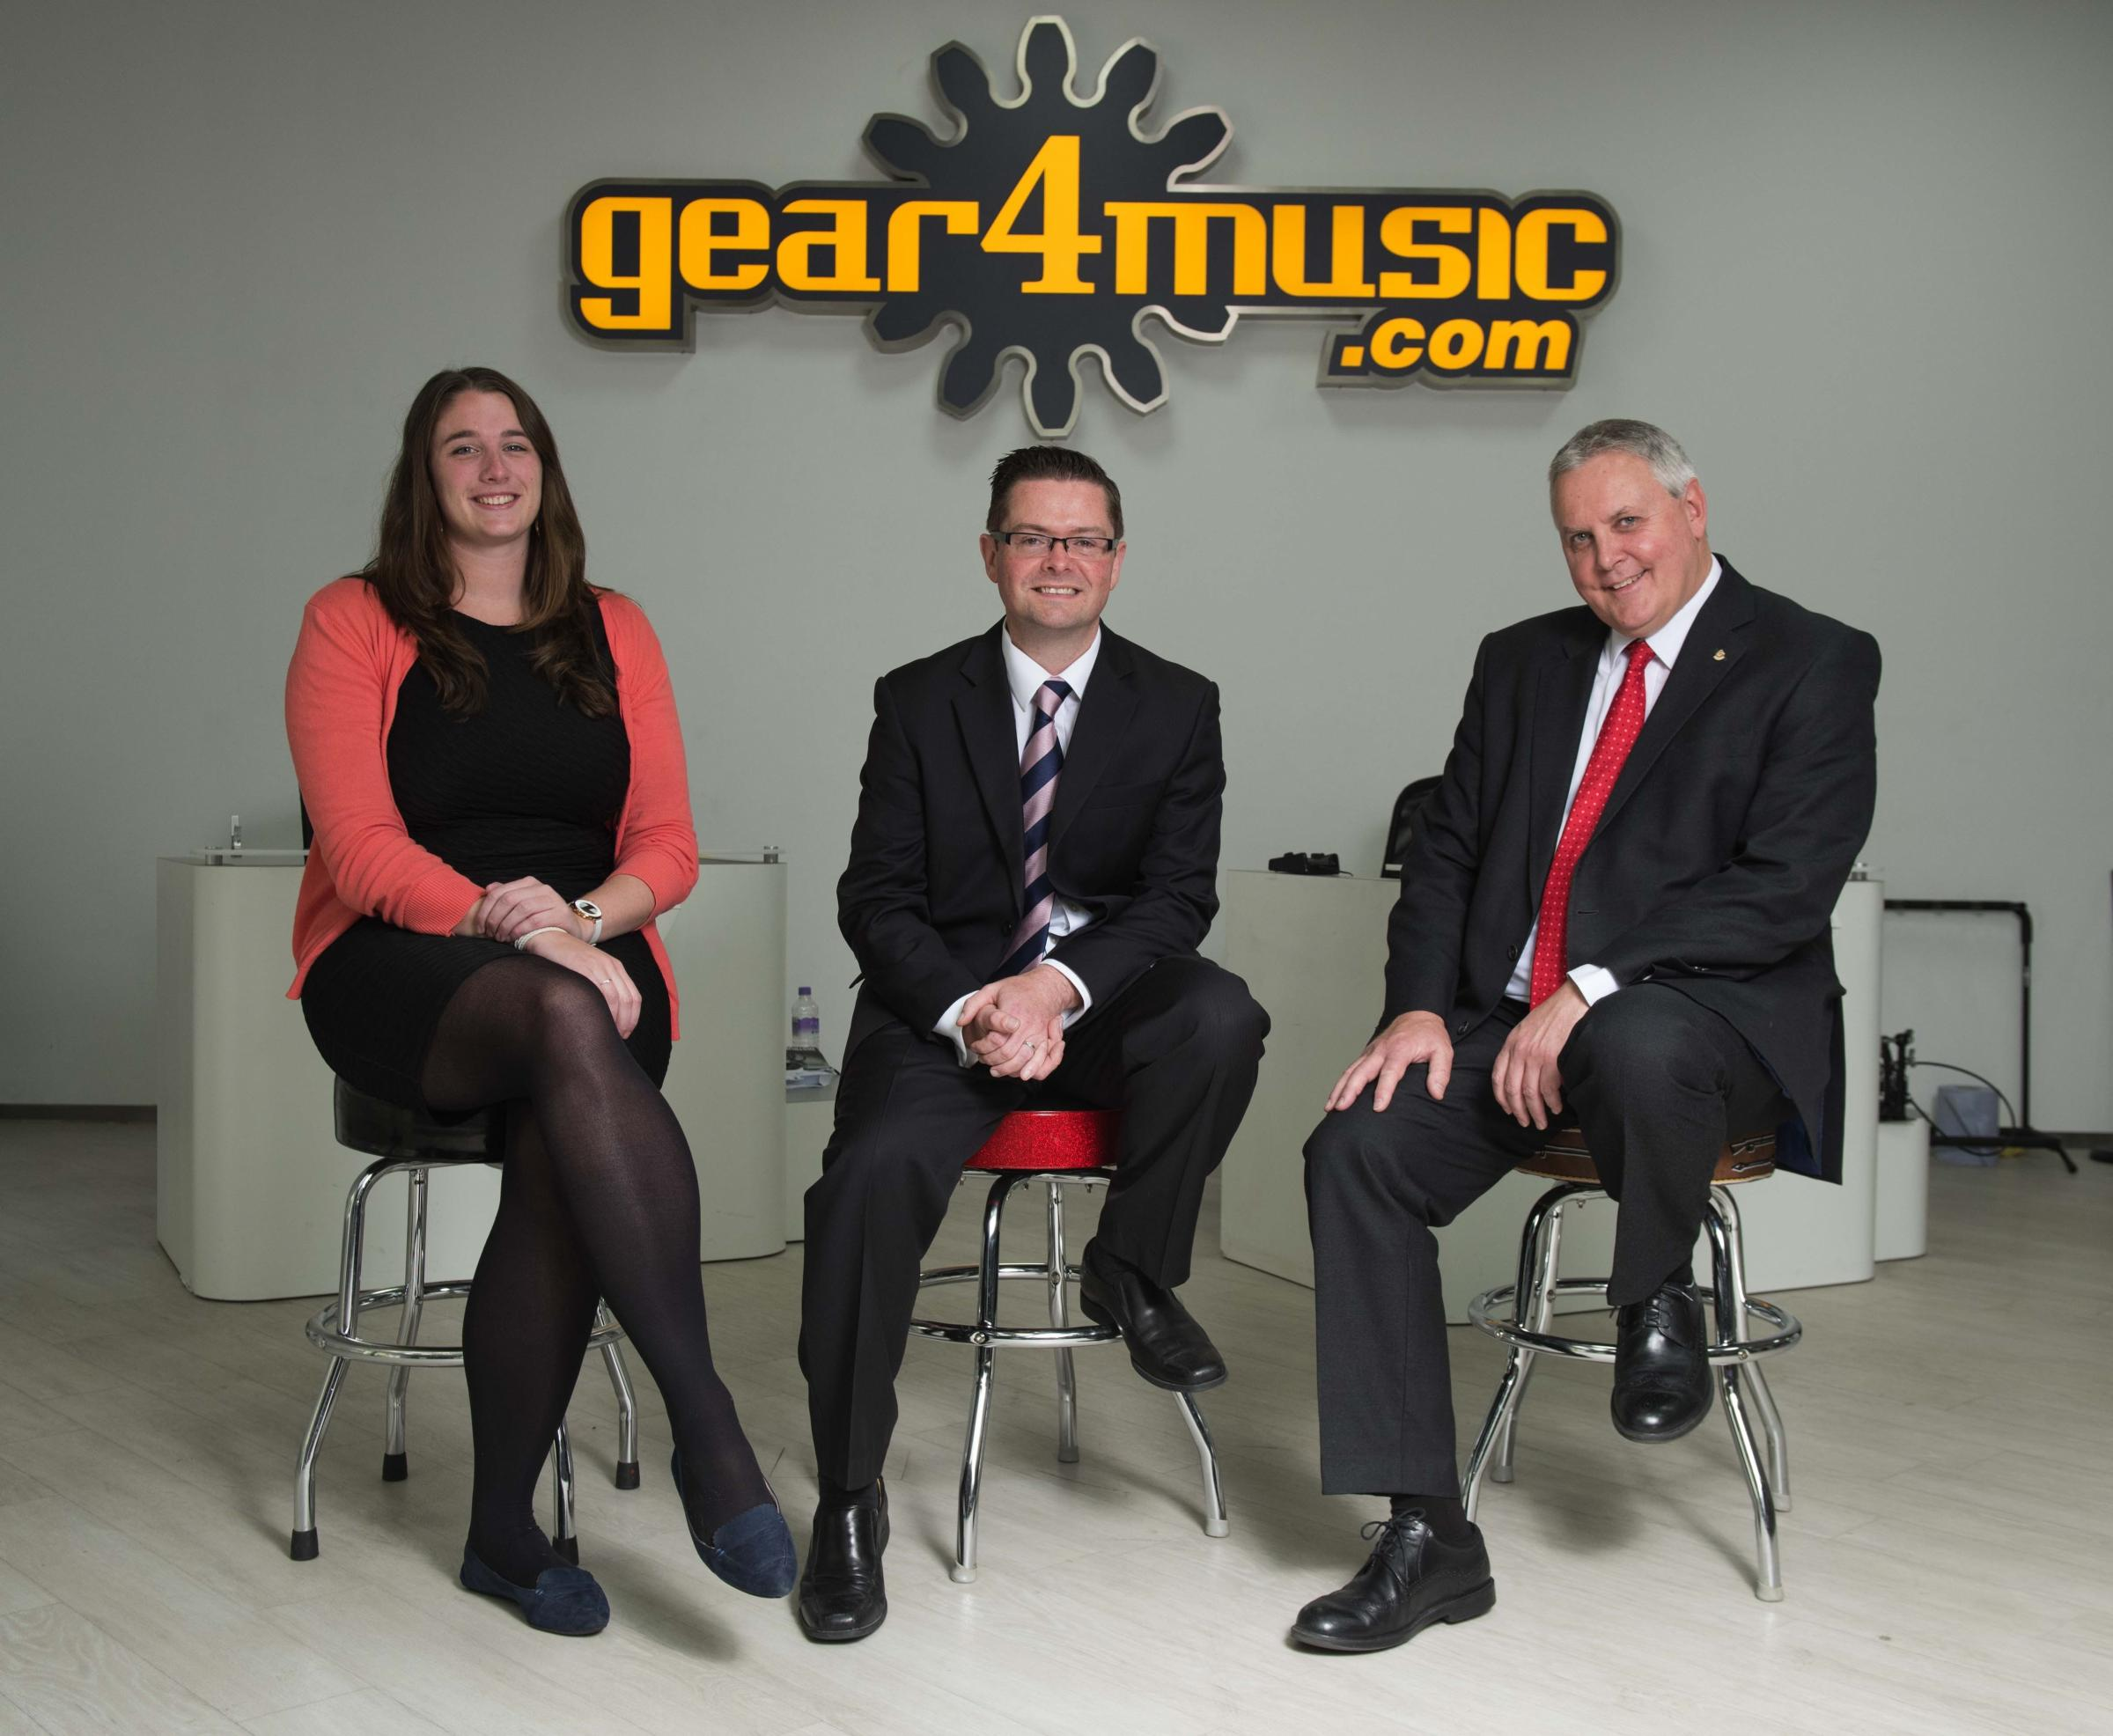 HSBC's Hannah Raistrick, Gear4music's chief financial operator Chris Scott and HSBC's Jonathan Rutter